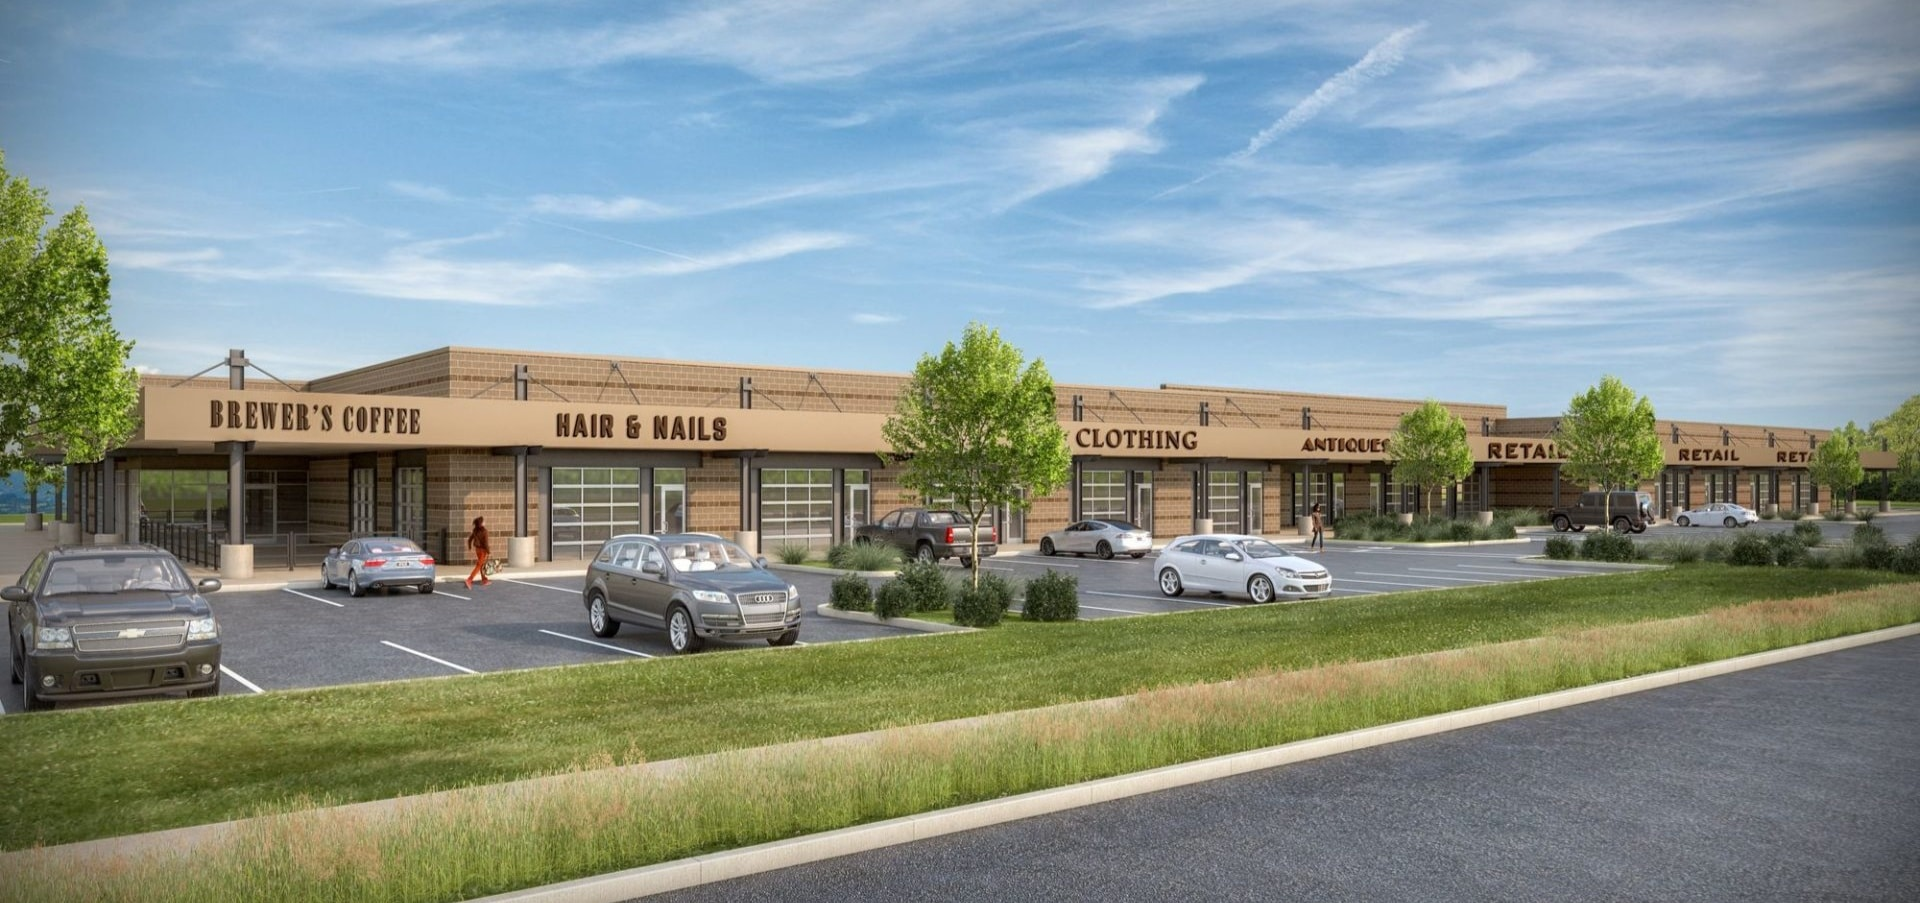 Johnstown Retail Perspective rendering